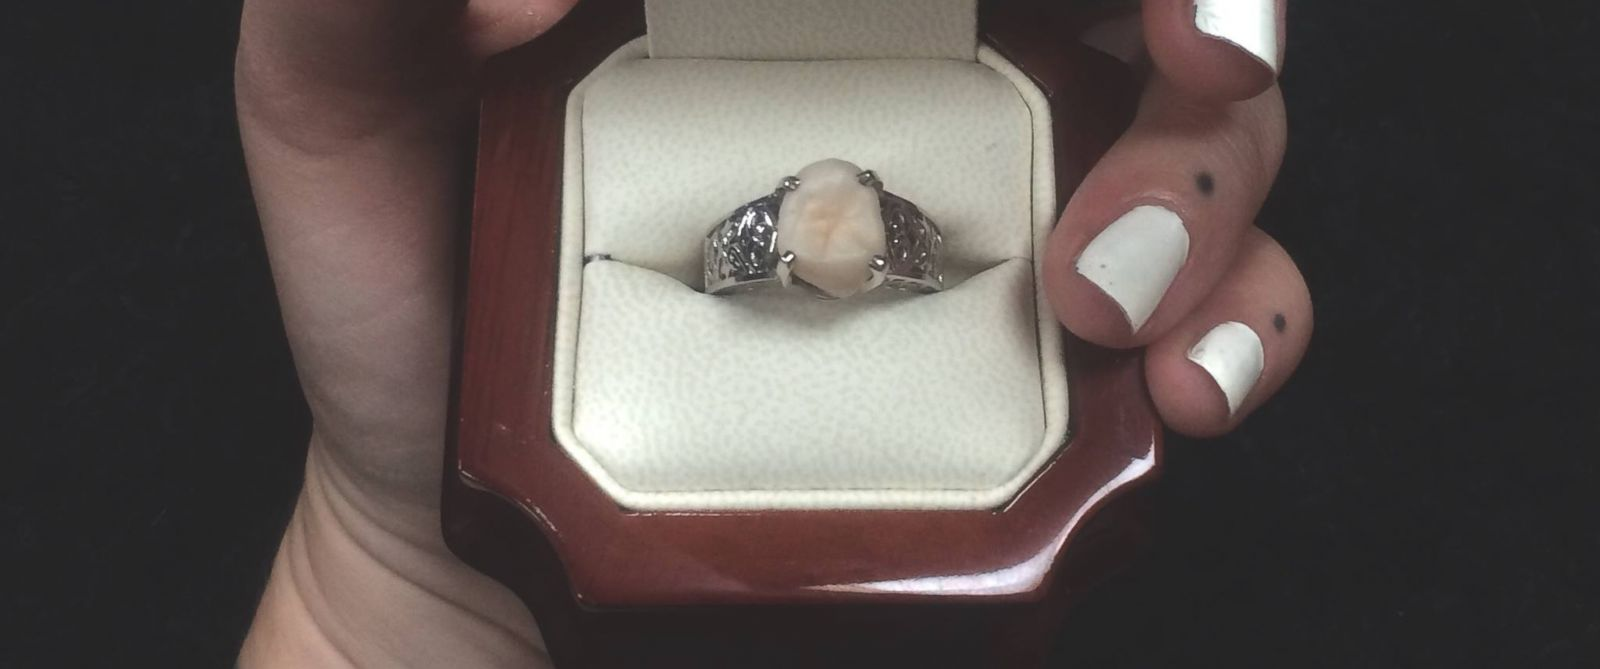 Canada man proposes to girlfriend with engagement ring for Jewelry made from kidney stones